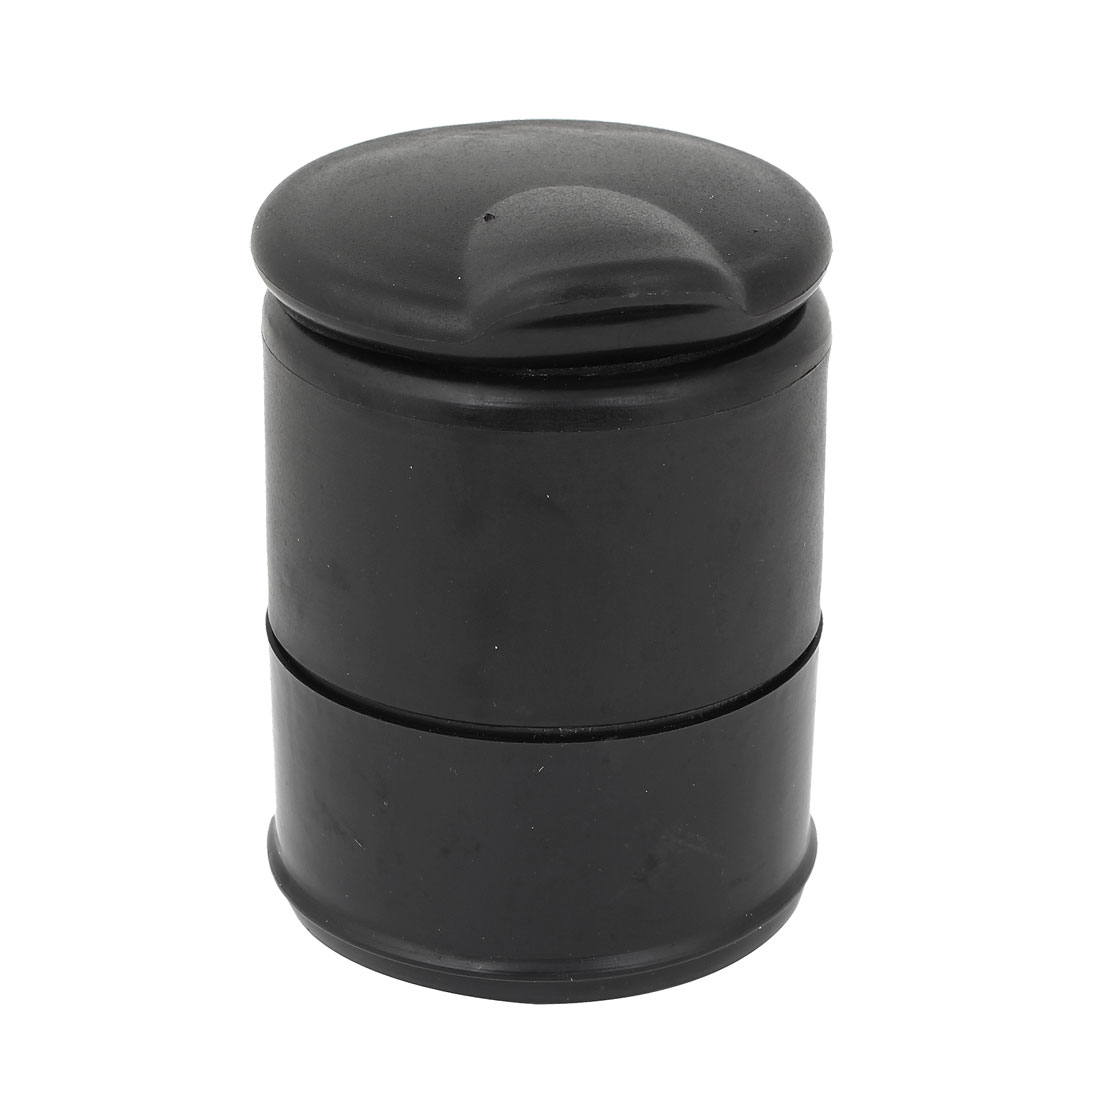 Black Plastic Casing Auto Car Smoking Cigarette Ashtray Holder